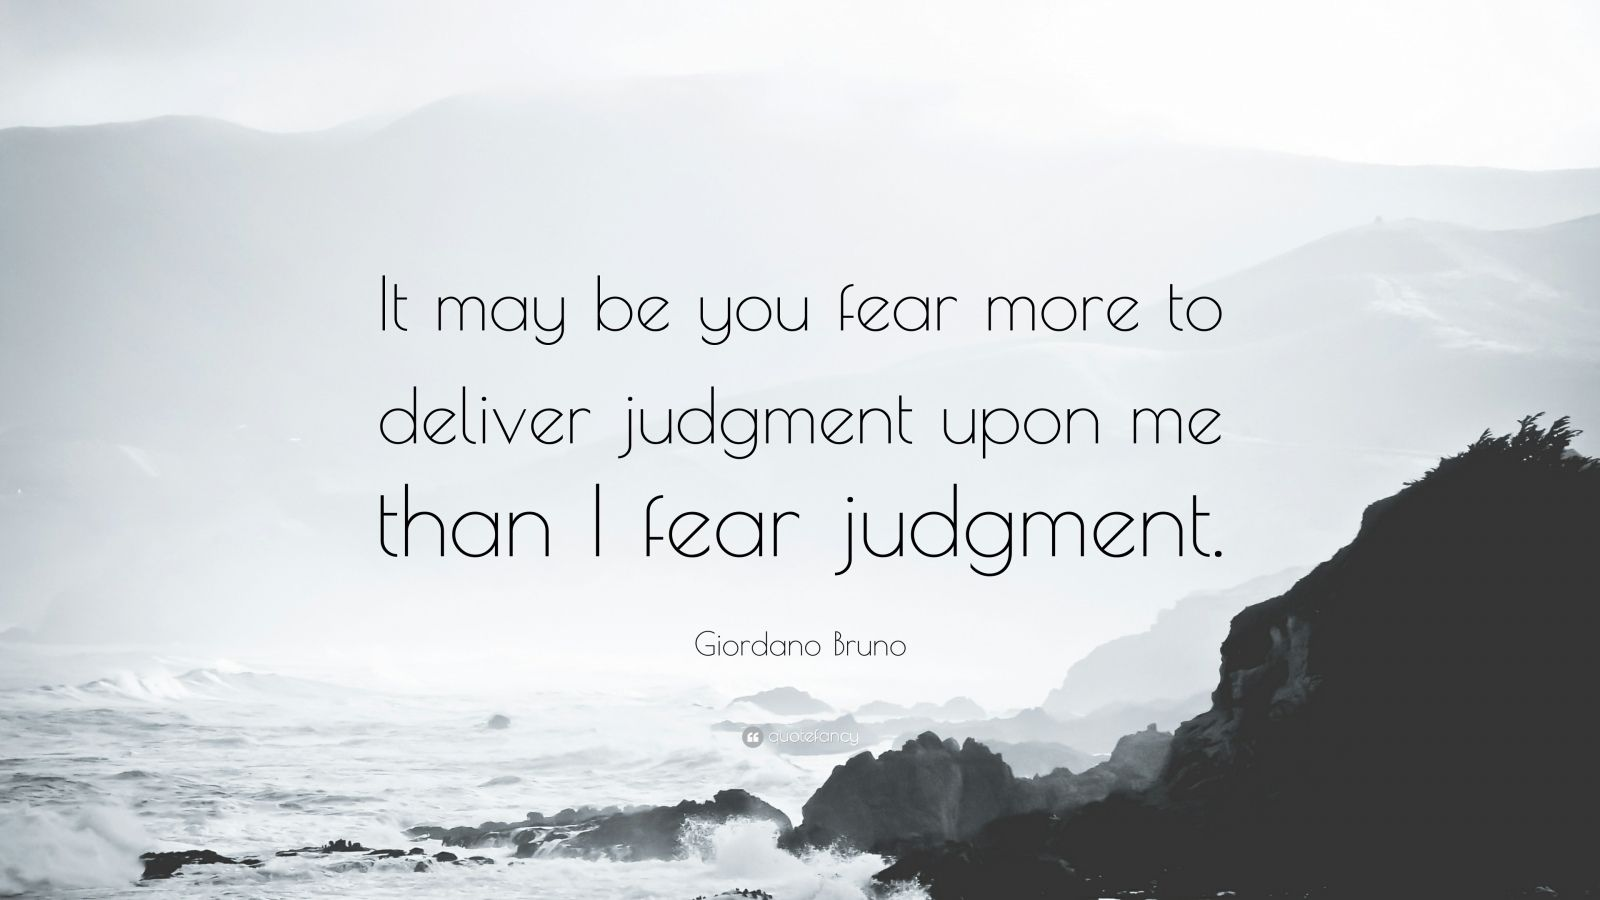 """Giordano Bruno Quote: """"It may be you fear more to deliver judgment upon me than I fear judgment."""""""